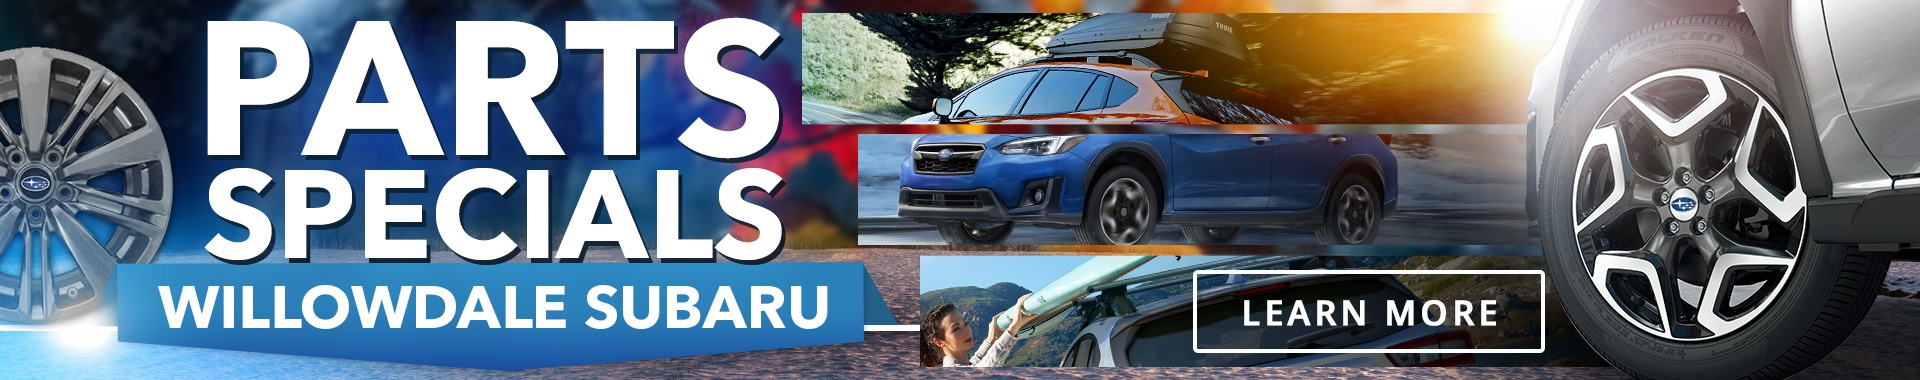 A Collage of Subaru Parts, Tires, Tire Rims, Roof Racks and More at Willowdale Subaru.